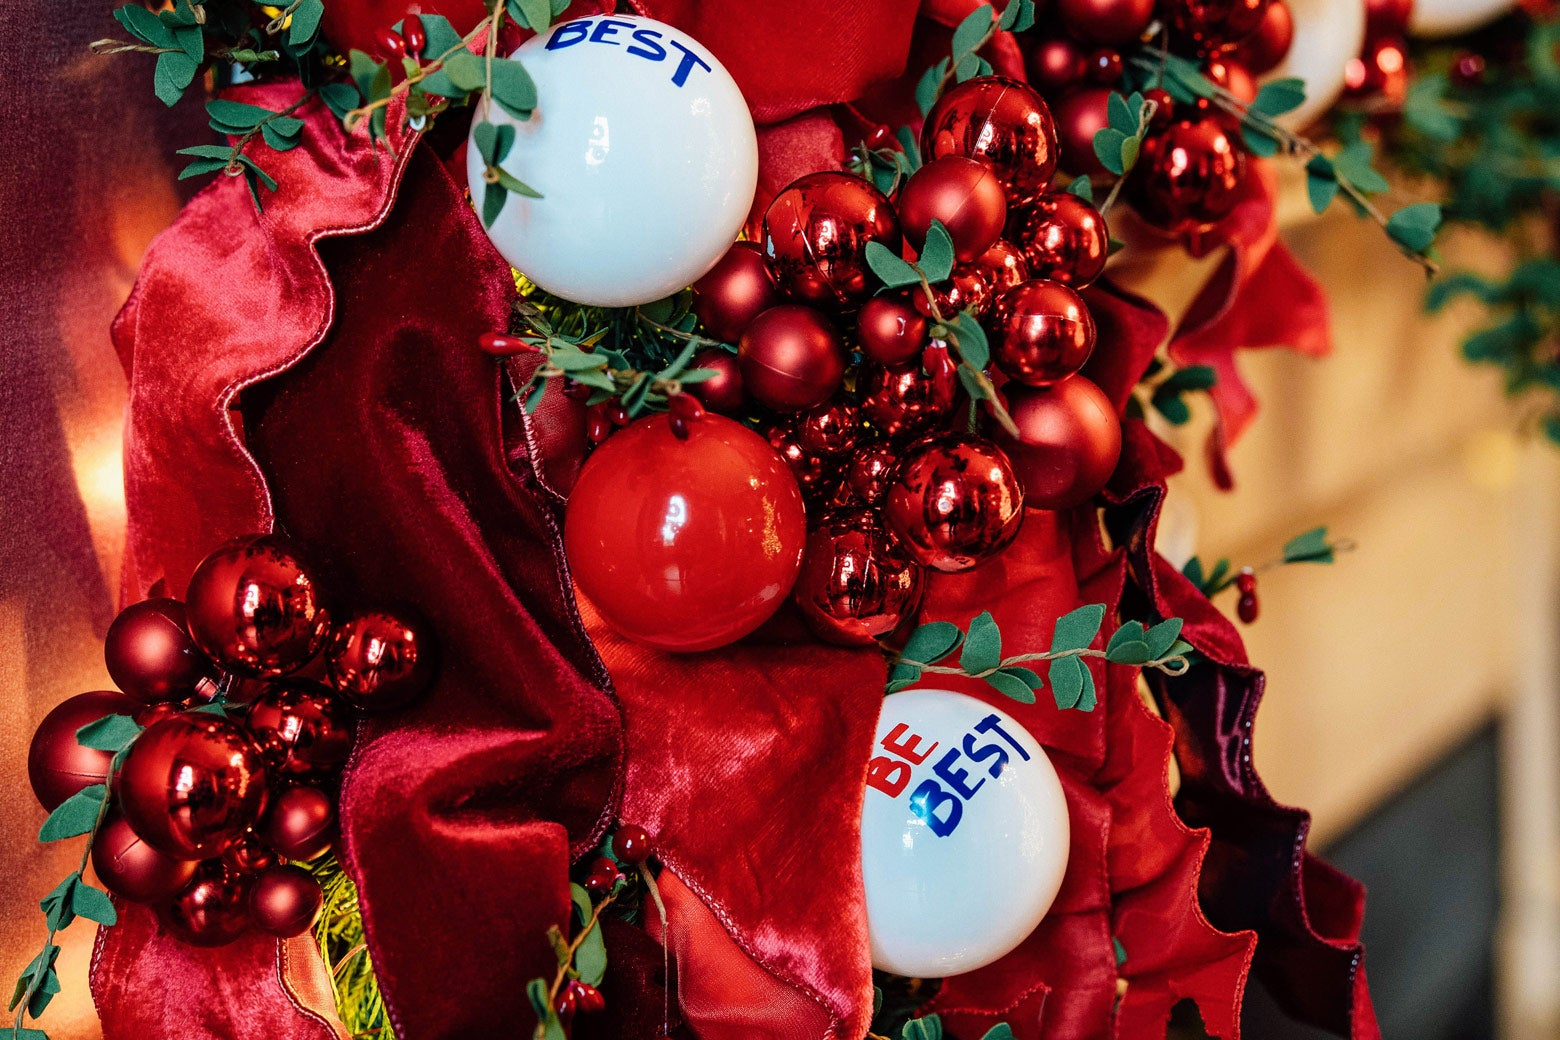 """White ornaments that say """"Be Best"""" are surrounded by red ribbons, fake holly berries, and red Christmas balls."""